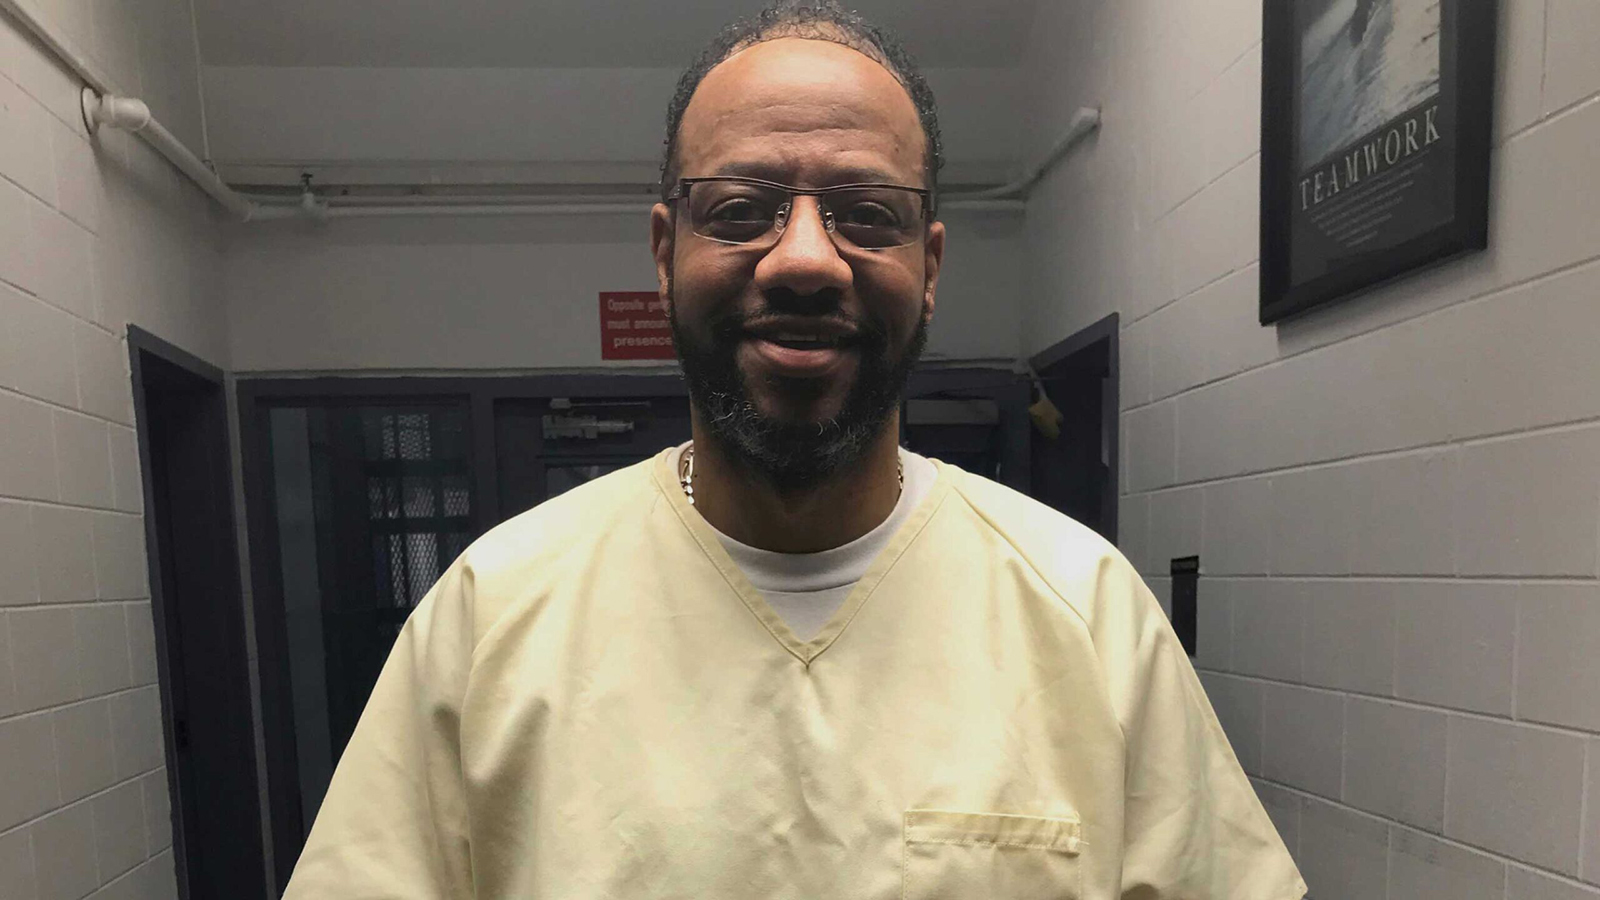 Pervis Payne has been on death row for 32 years.